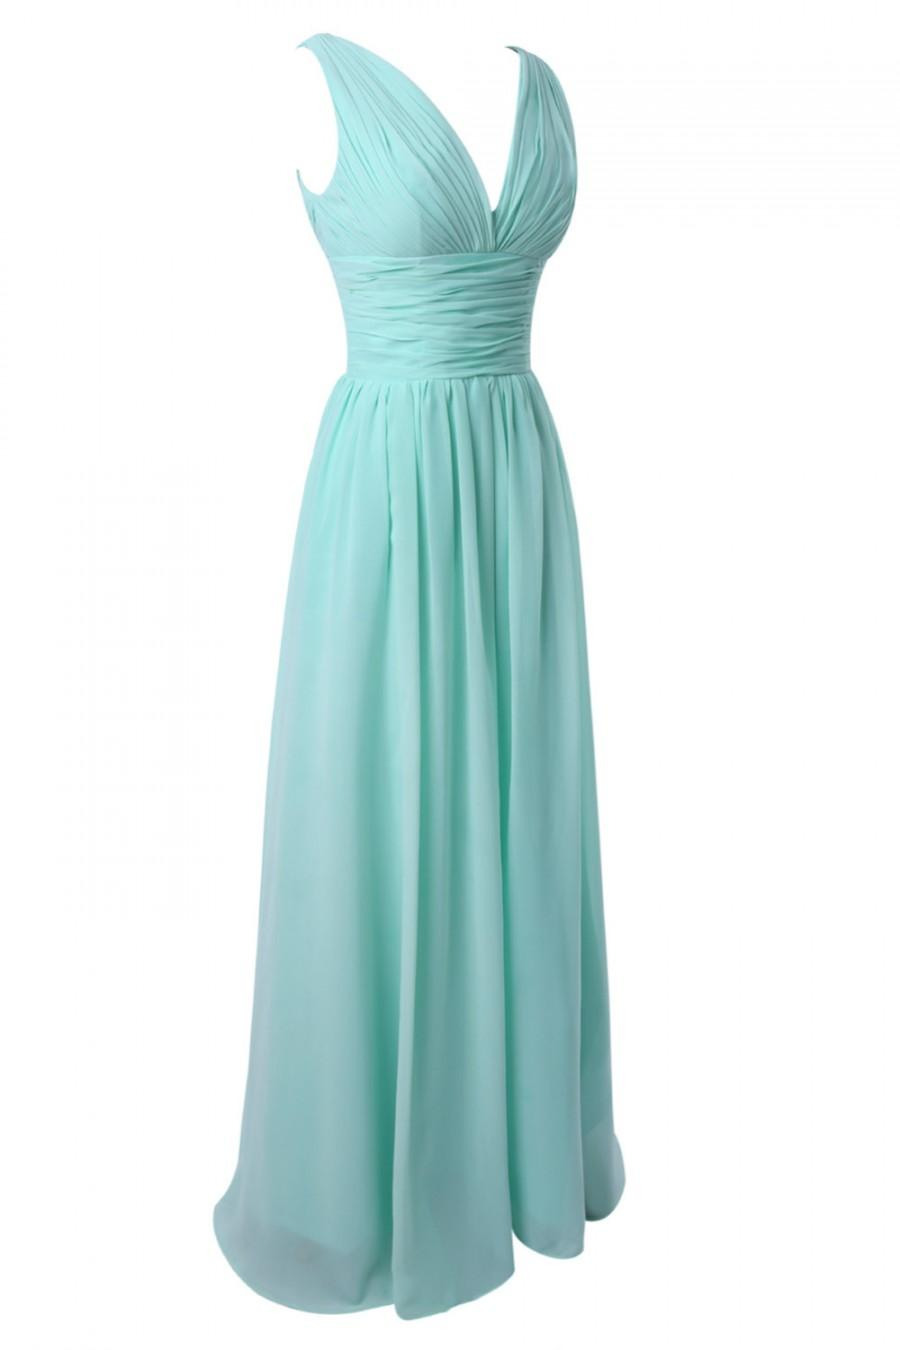 Long V Cut Neckline Chiffon Dresses Floor Length Dresses Sheath